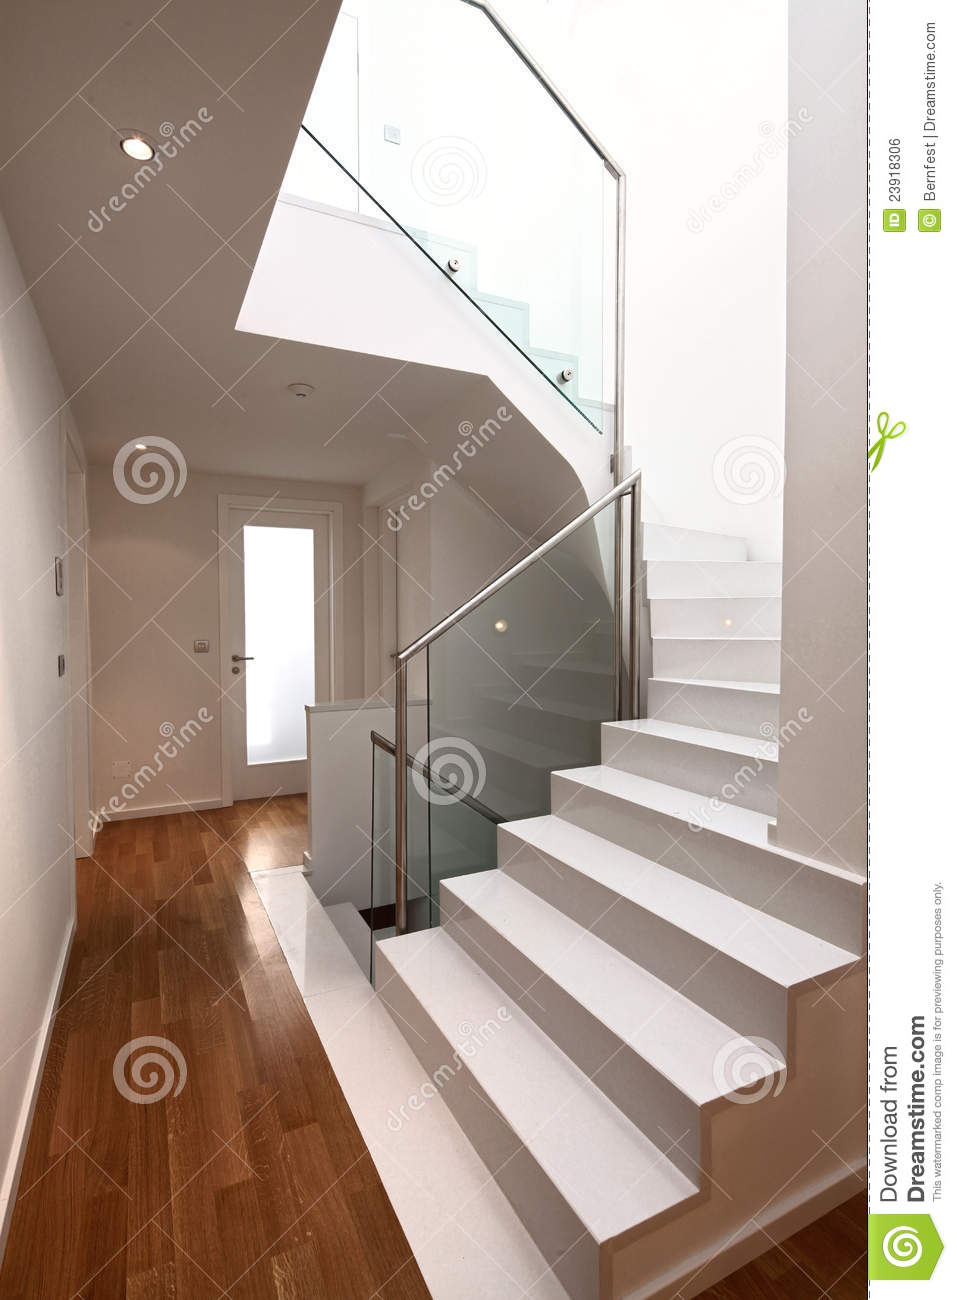 House interior with modern stairs royalty free stock image for Escaleras retractiles